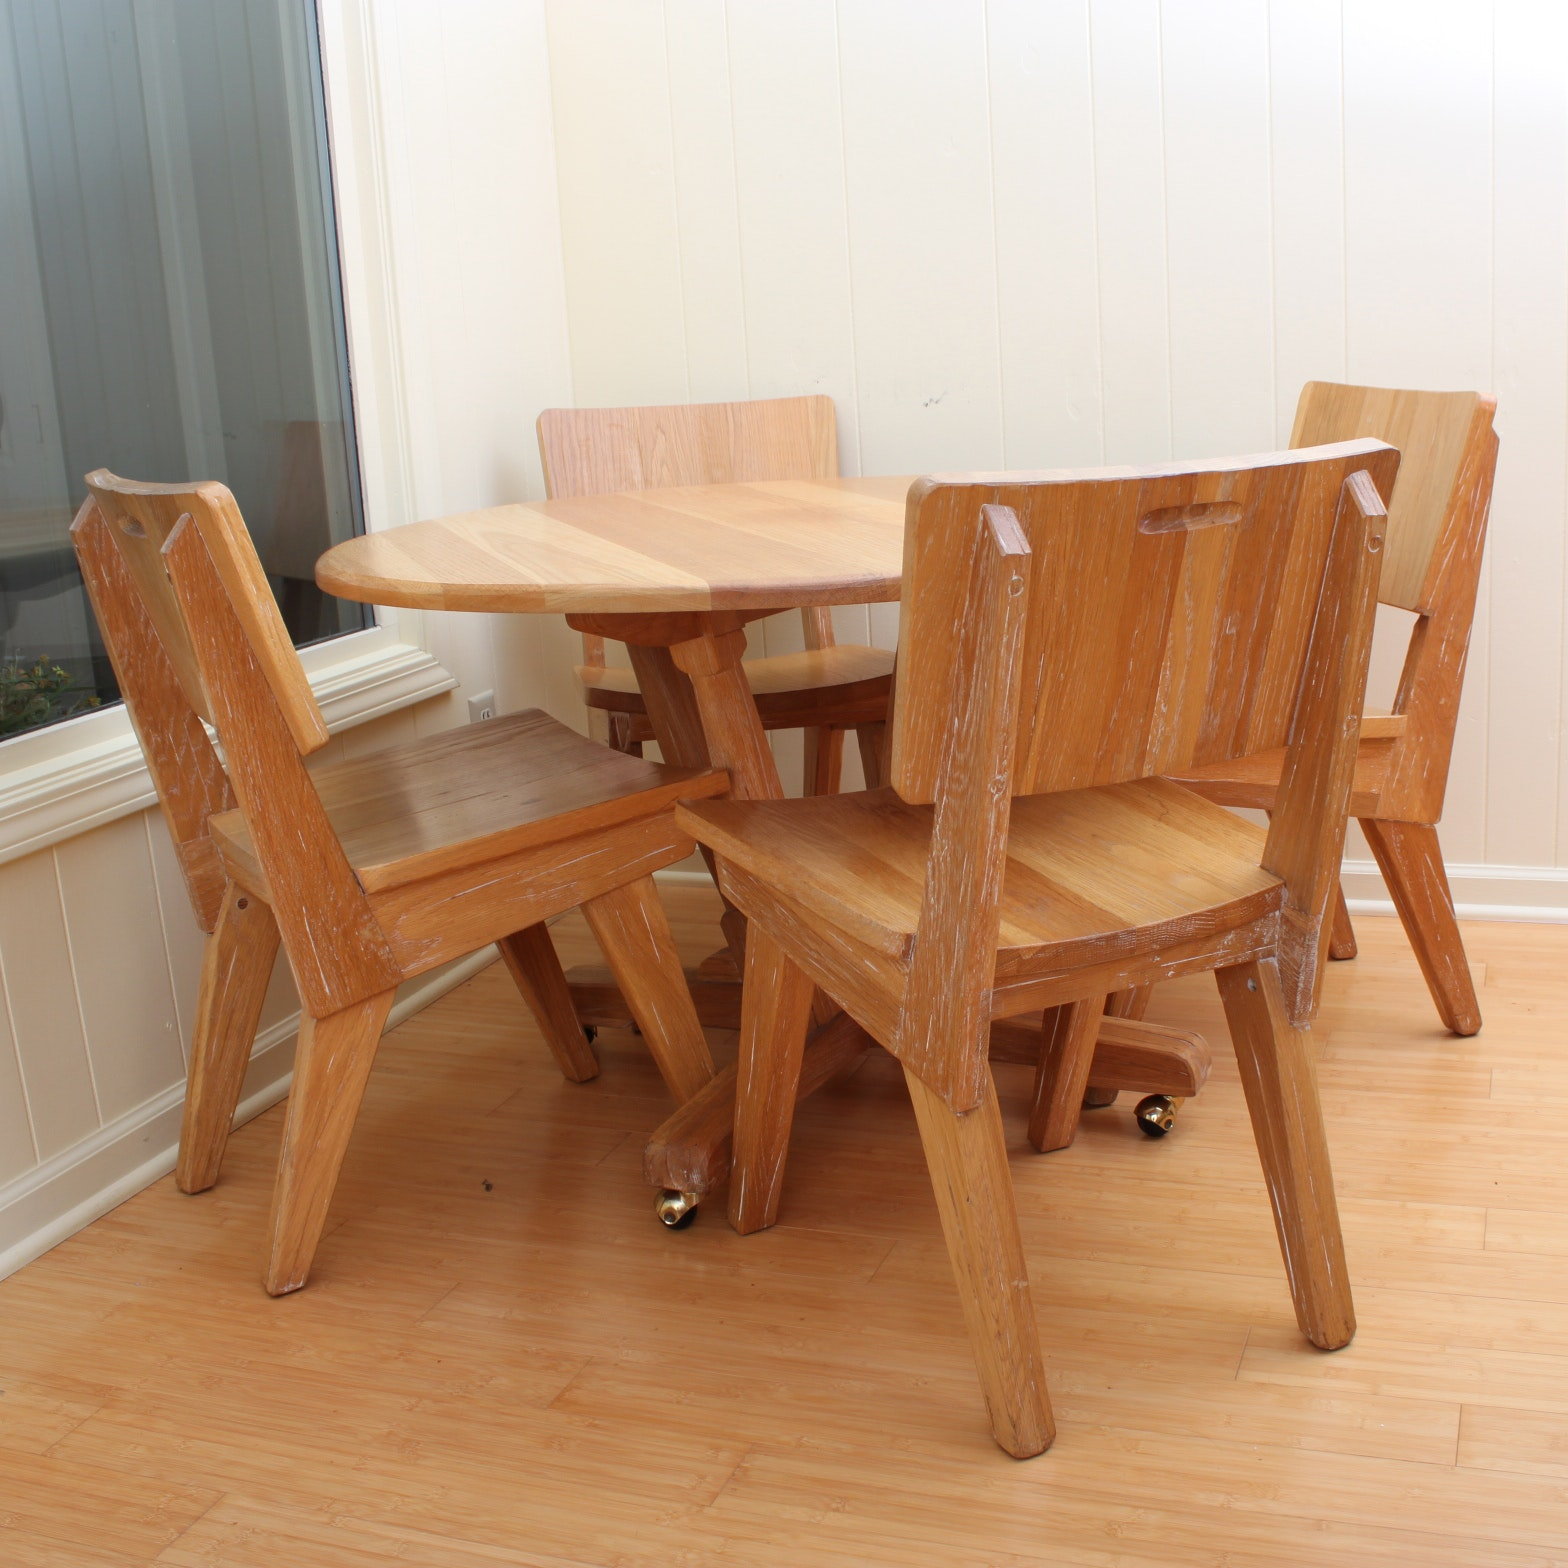 Vintage Mid Century Modern Ash Dining Table With Chairs